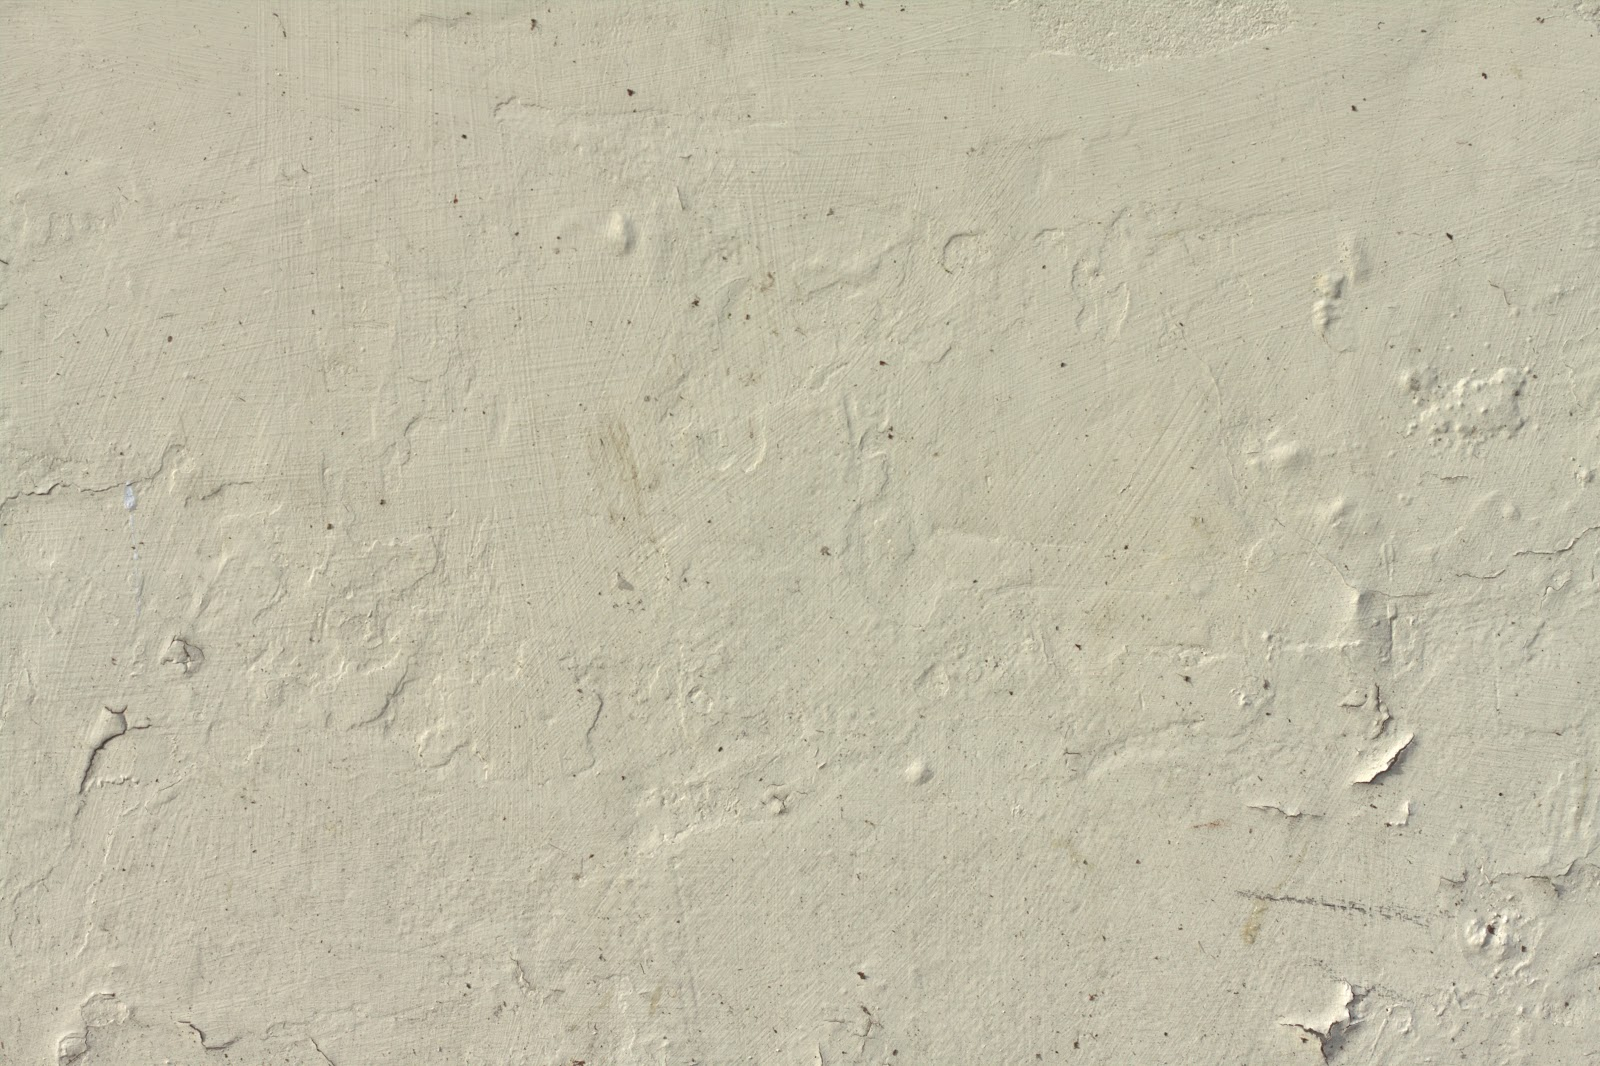 Stucco wall chipped paint feb_2015 texture 4770x3178